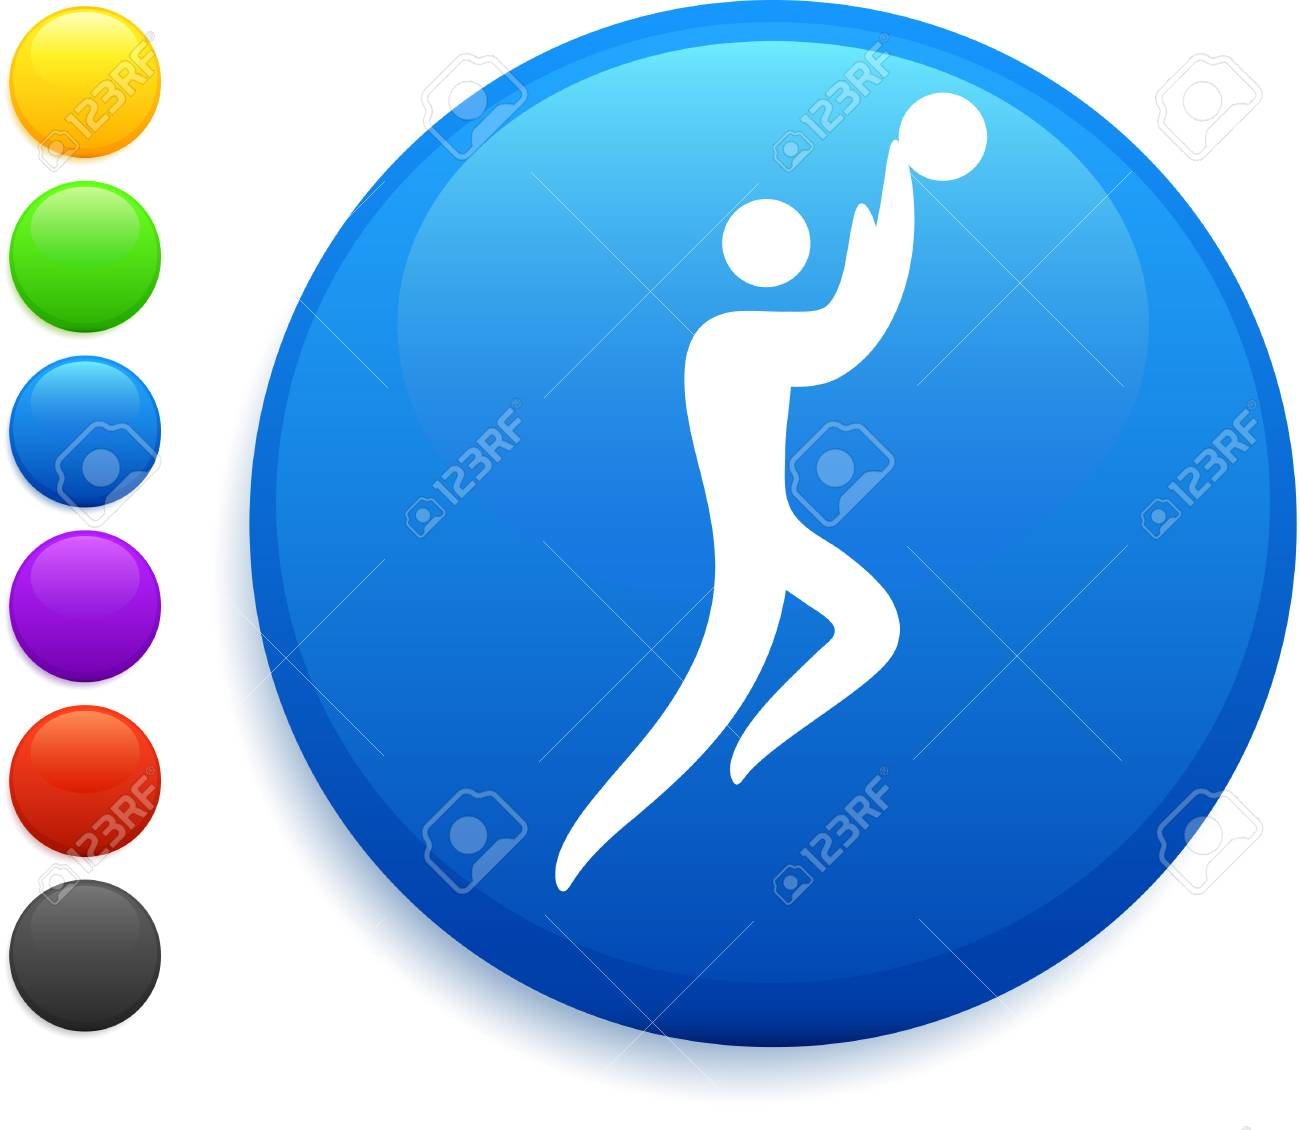 basketball icon on round internet button